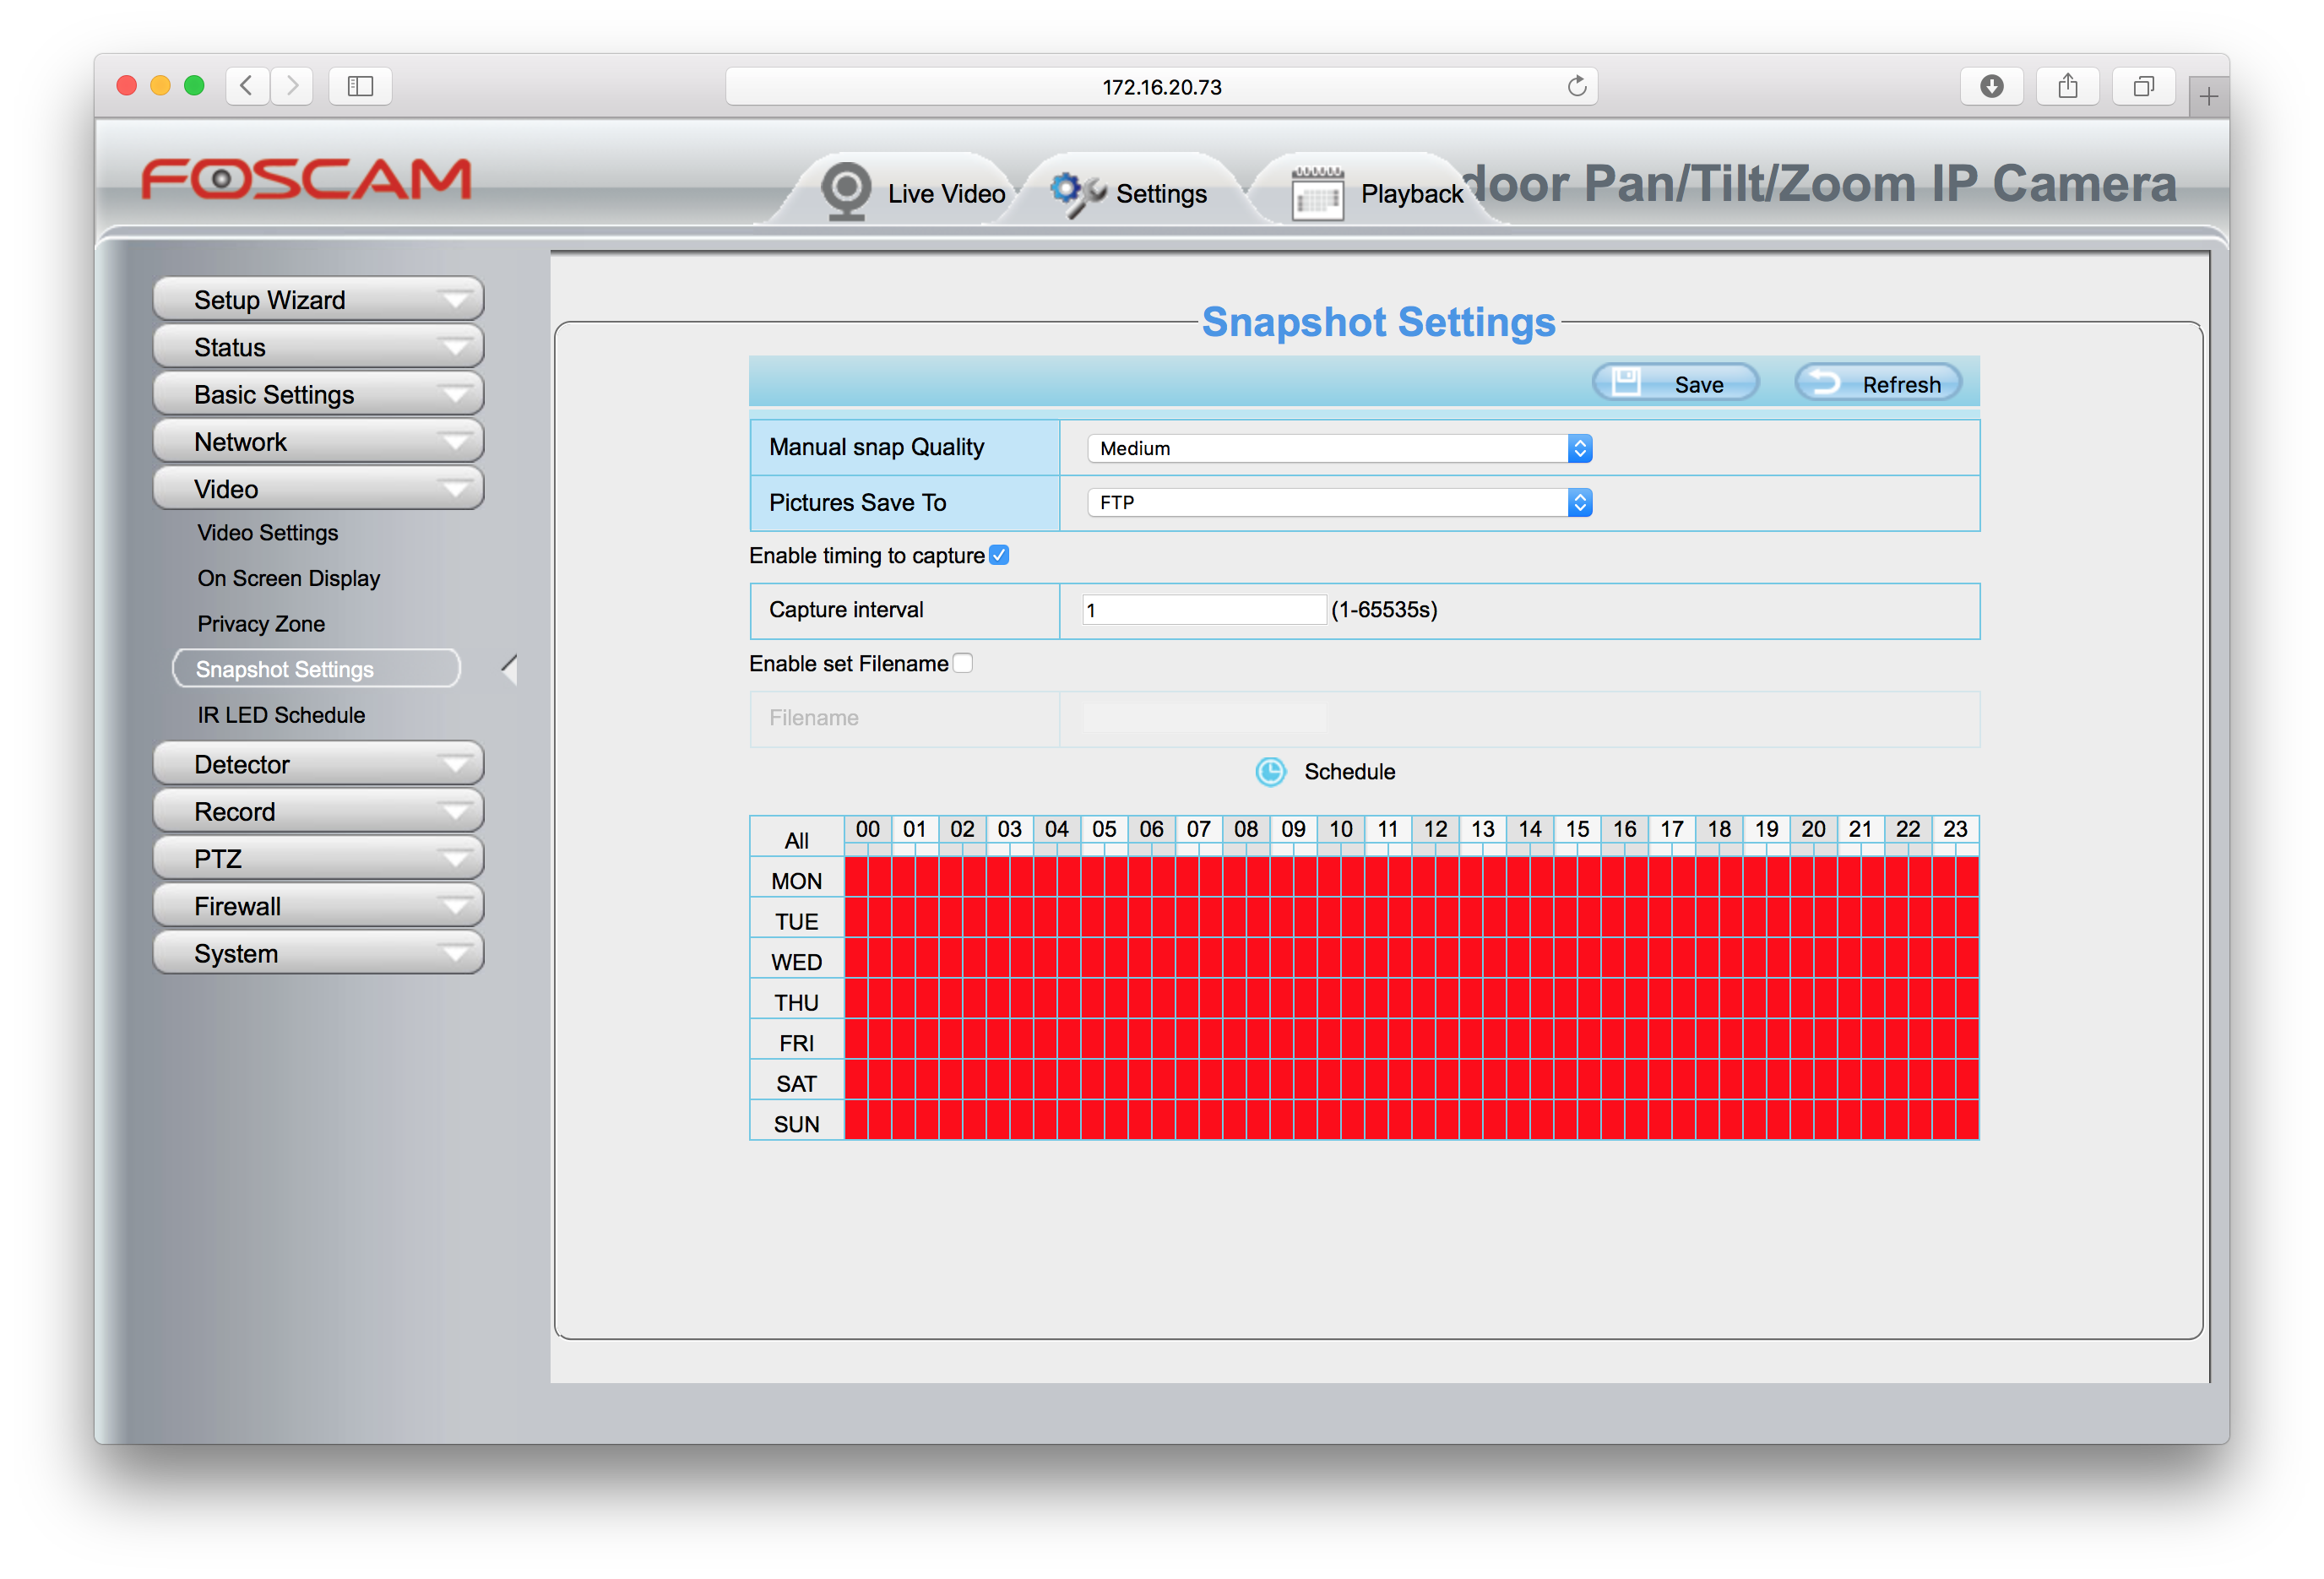 How to configure a Foscam FI9900P Outdoor Camera from Mac or